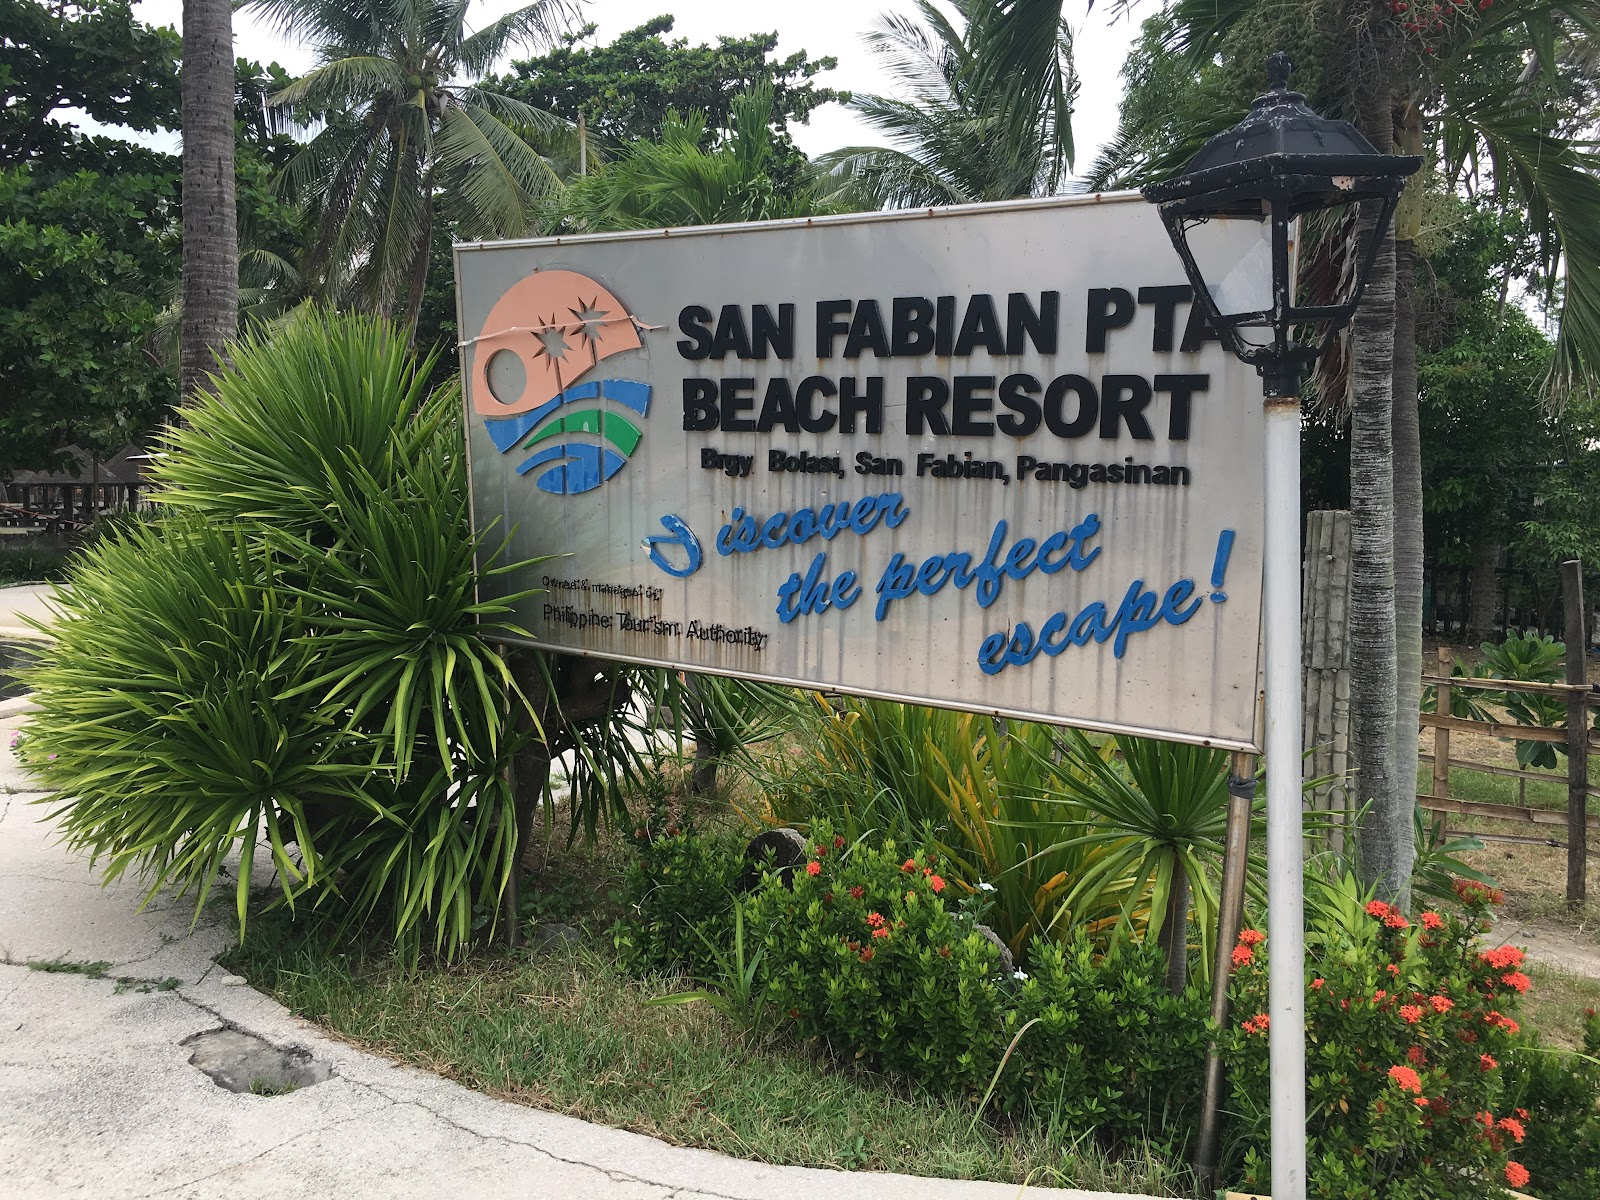 San Fabian Beach Resort And Price List The Best Beaches In World